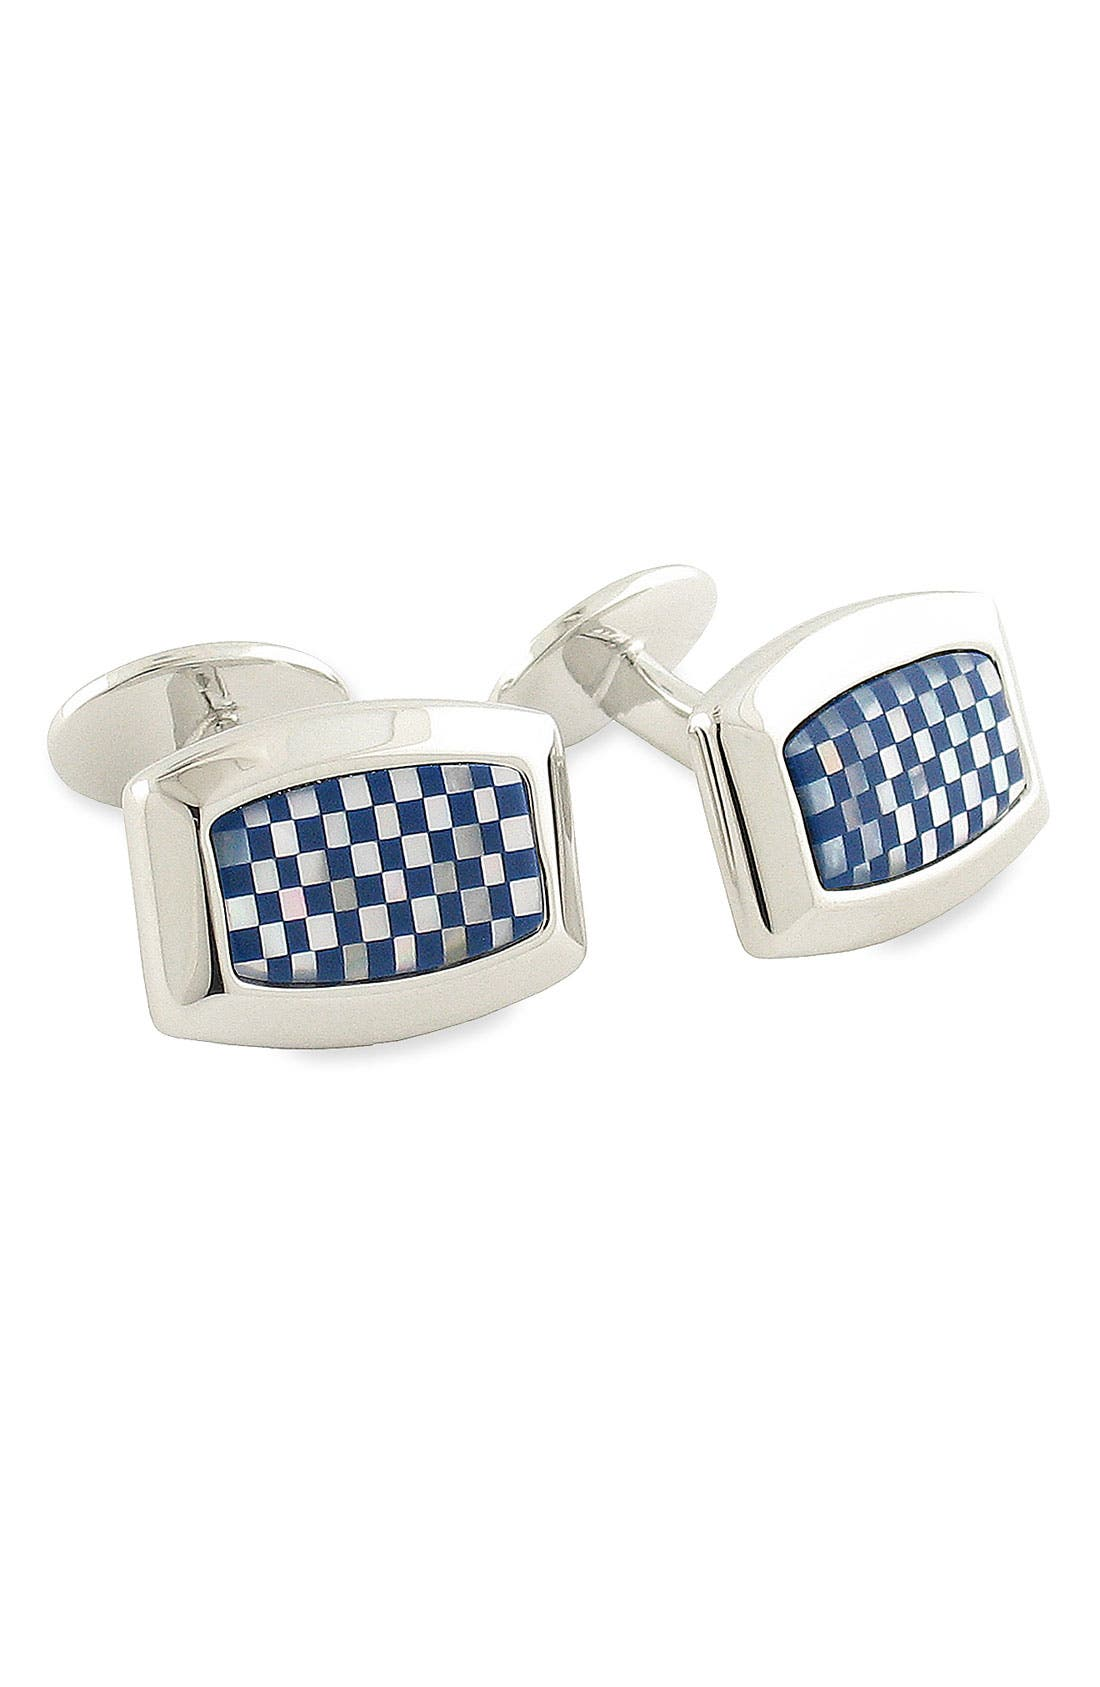 Alternate Image 1 Selected - David Donahue Check Pattern Cuff Links